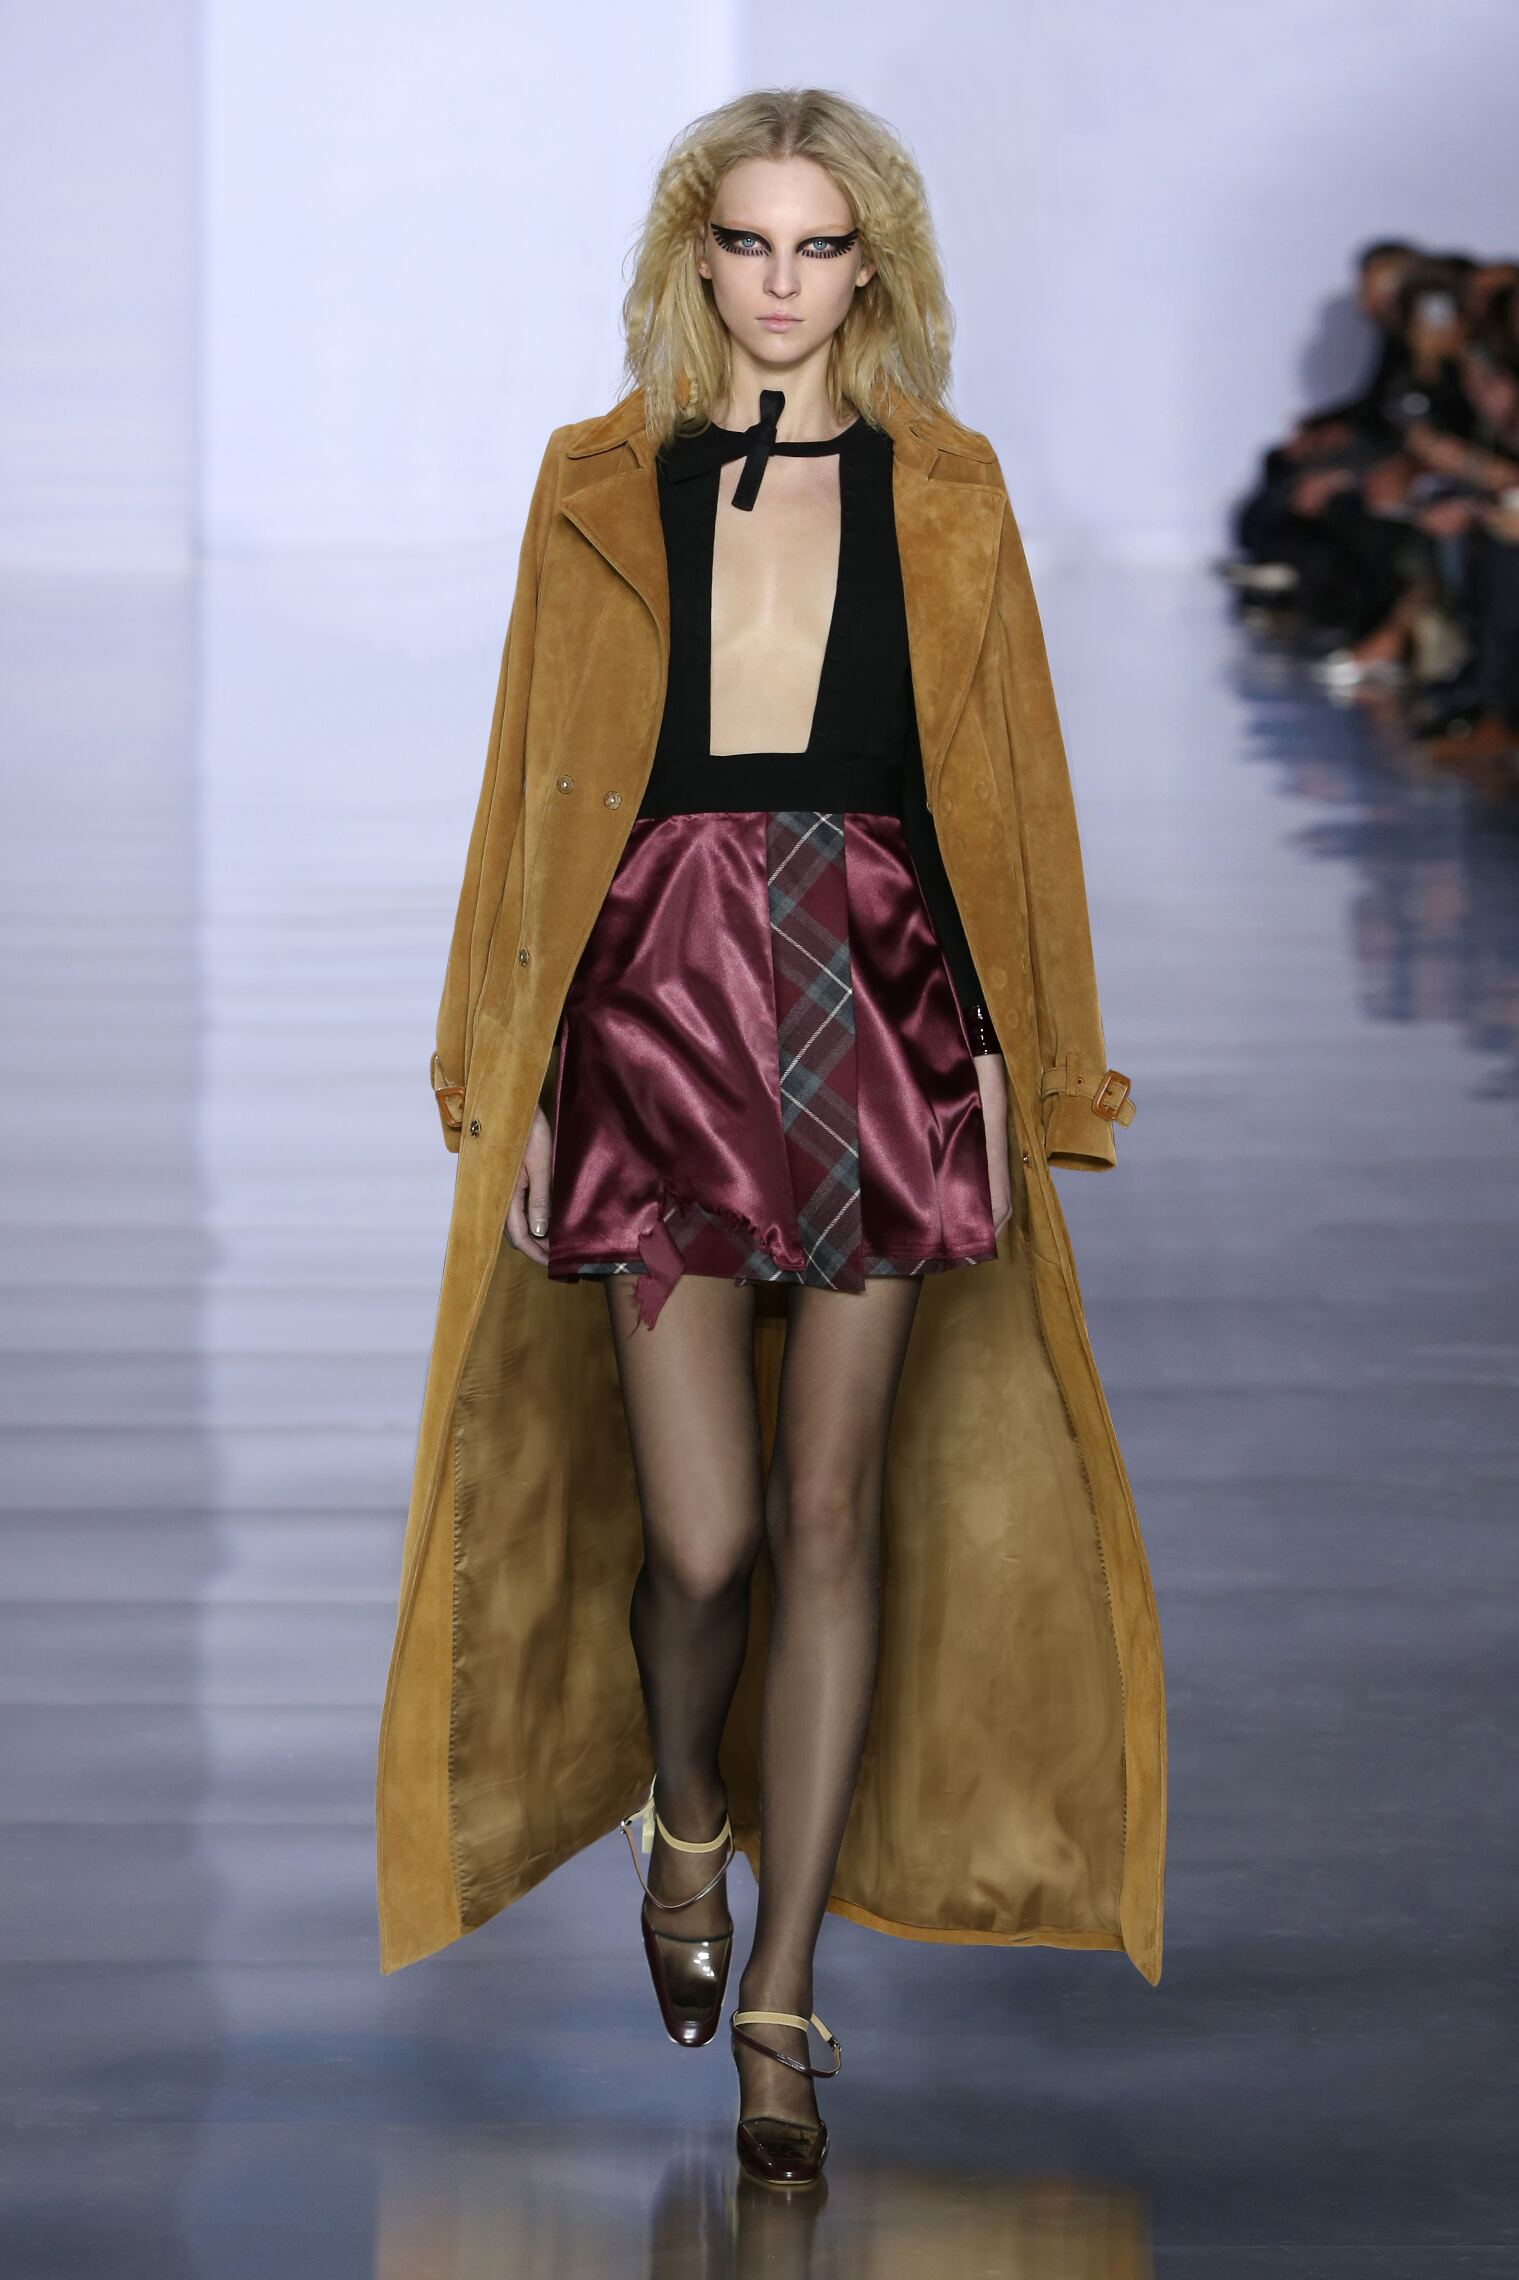 2016 Fall Fashion Woman Maison Margiela Collection